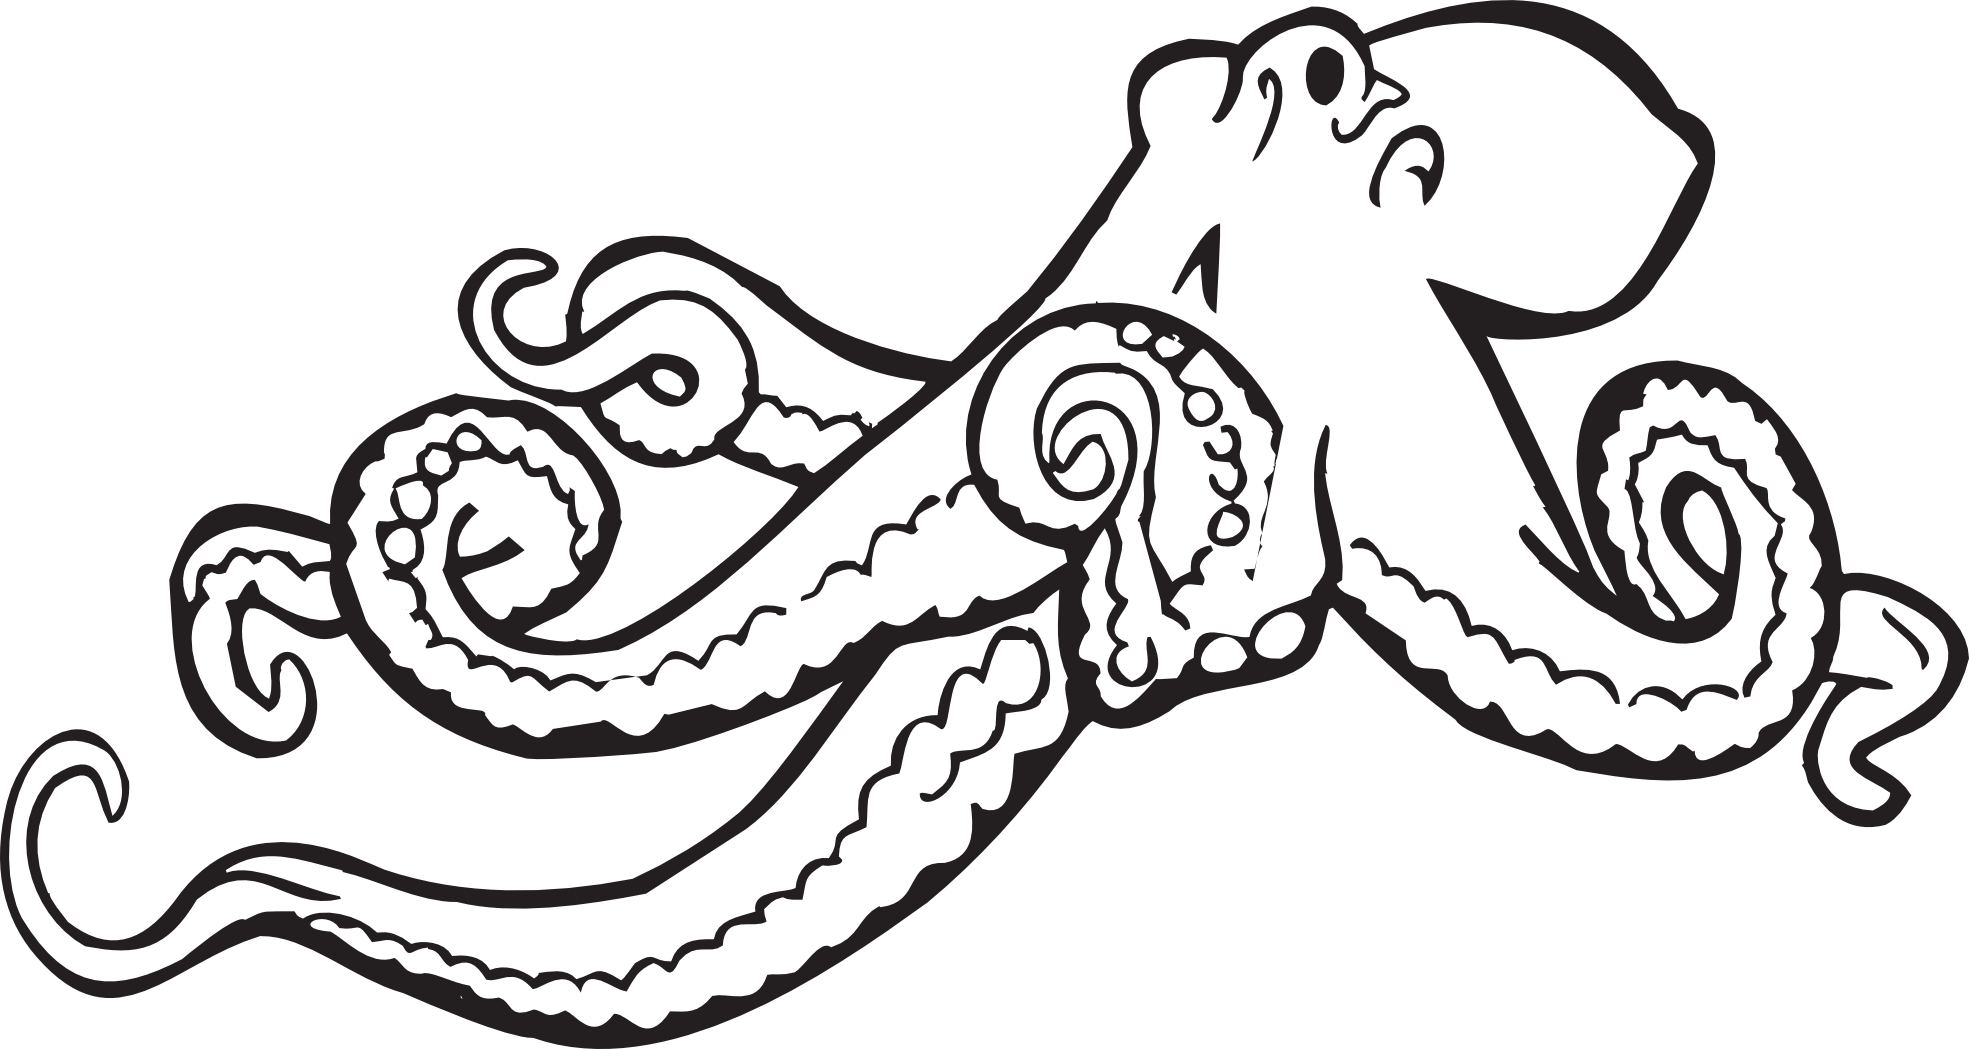 Octopus Clip Art Black And White   Clipart Panda   Free Clipart Images